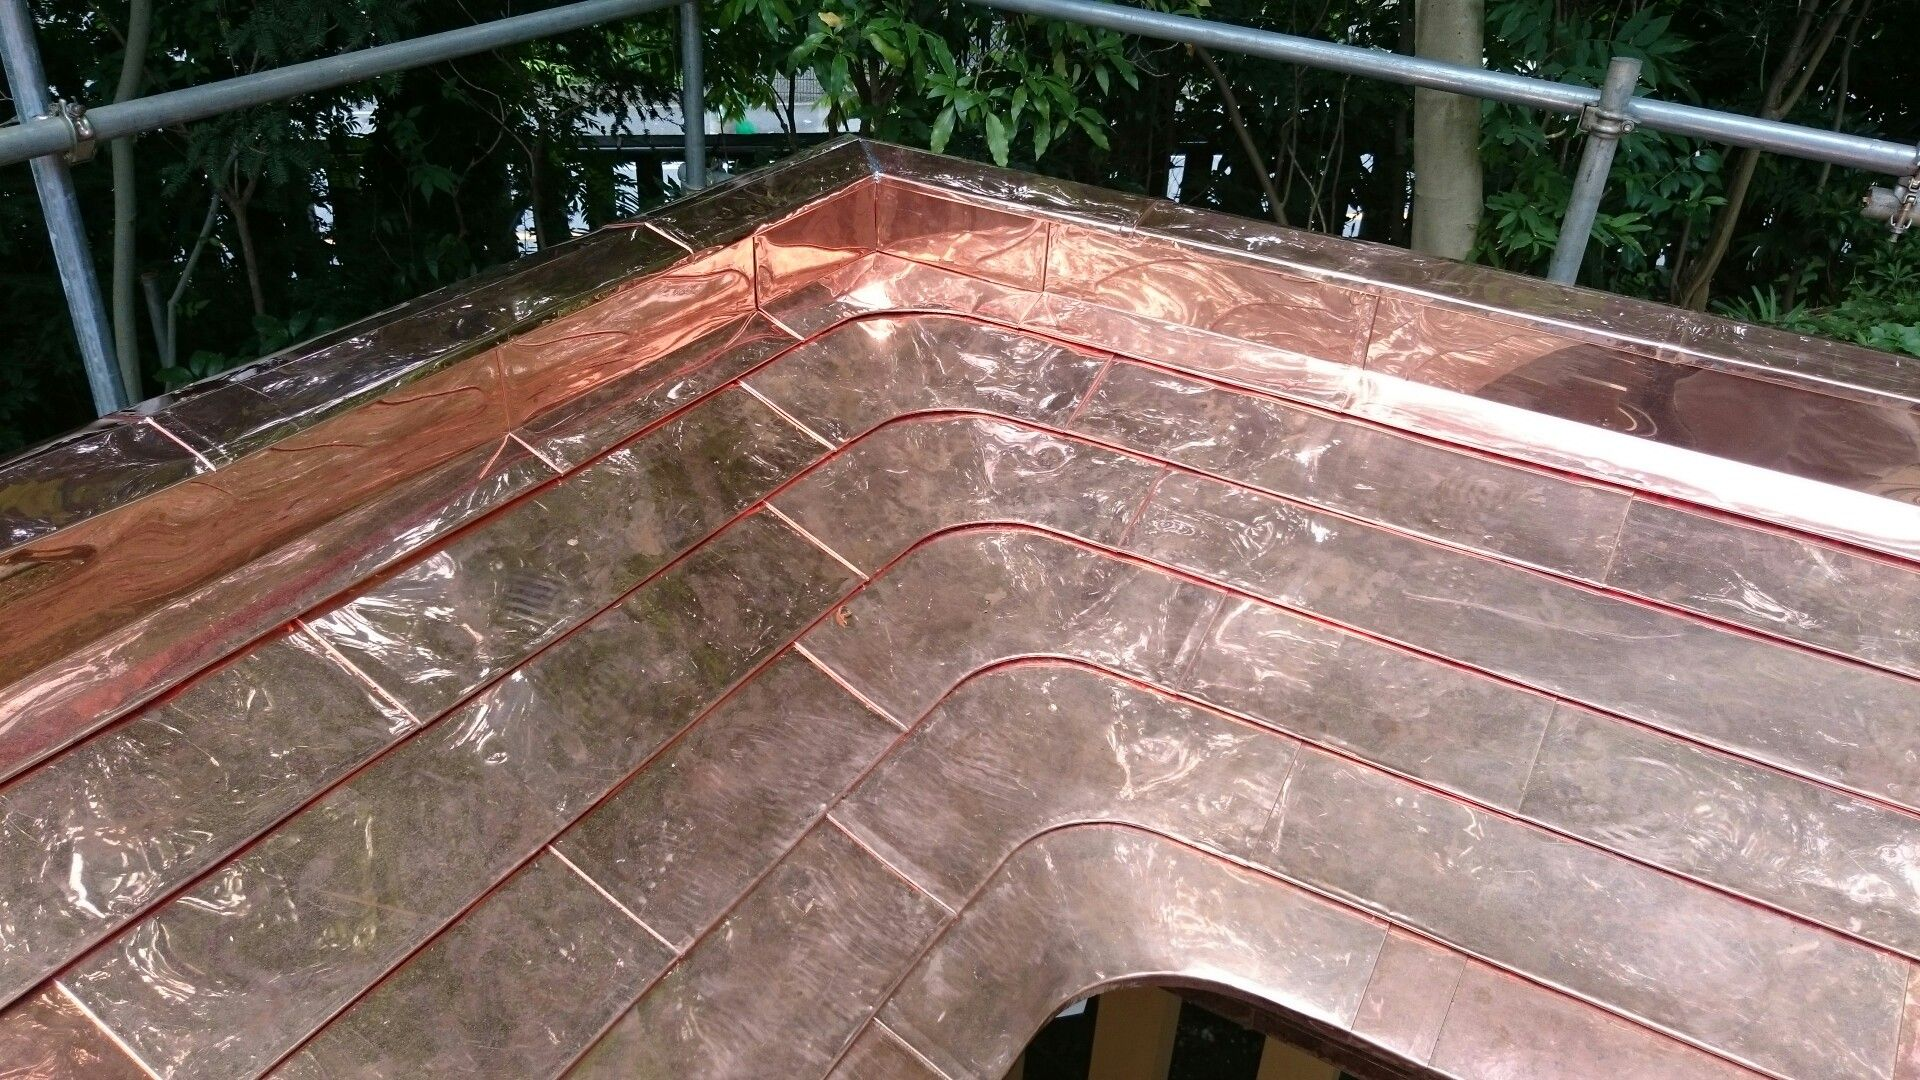 Copper Roof Metal Roof Construction Roof Cladding Copper Roof